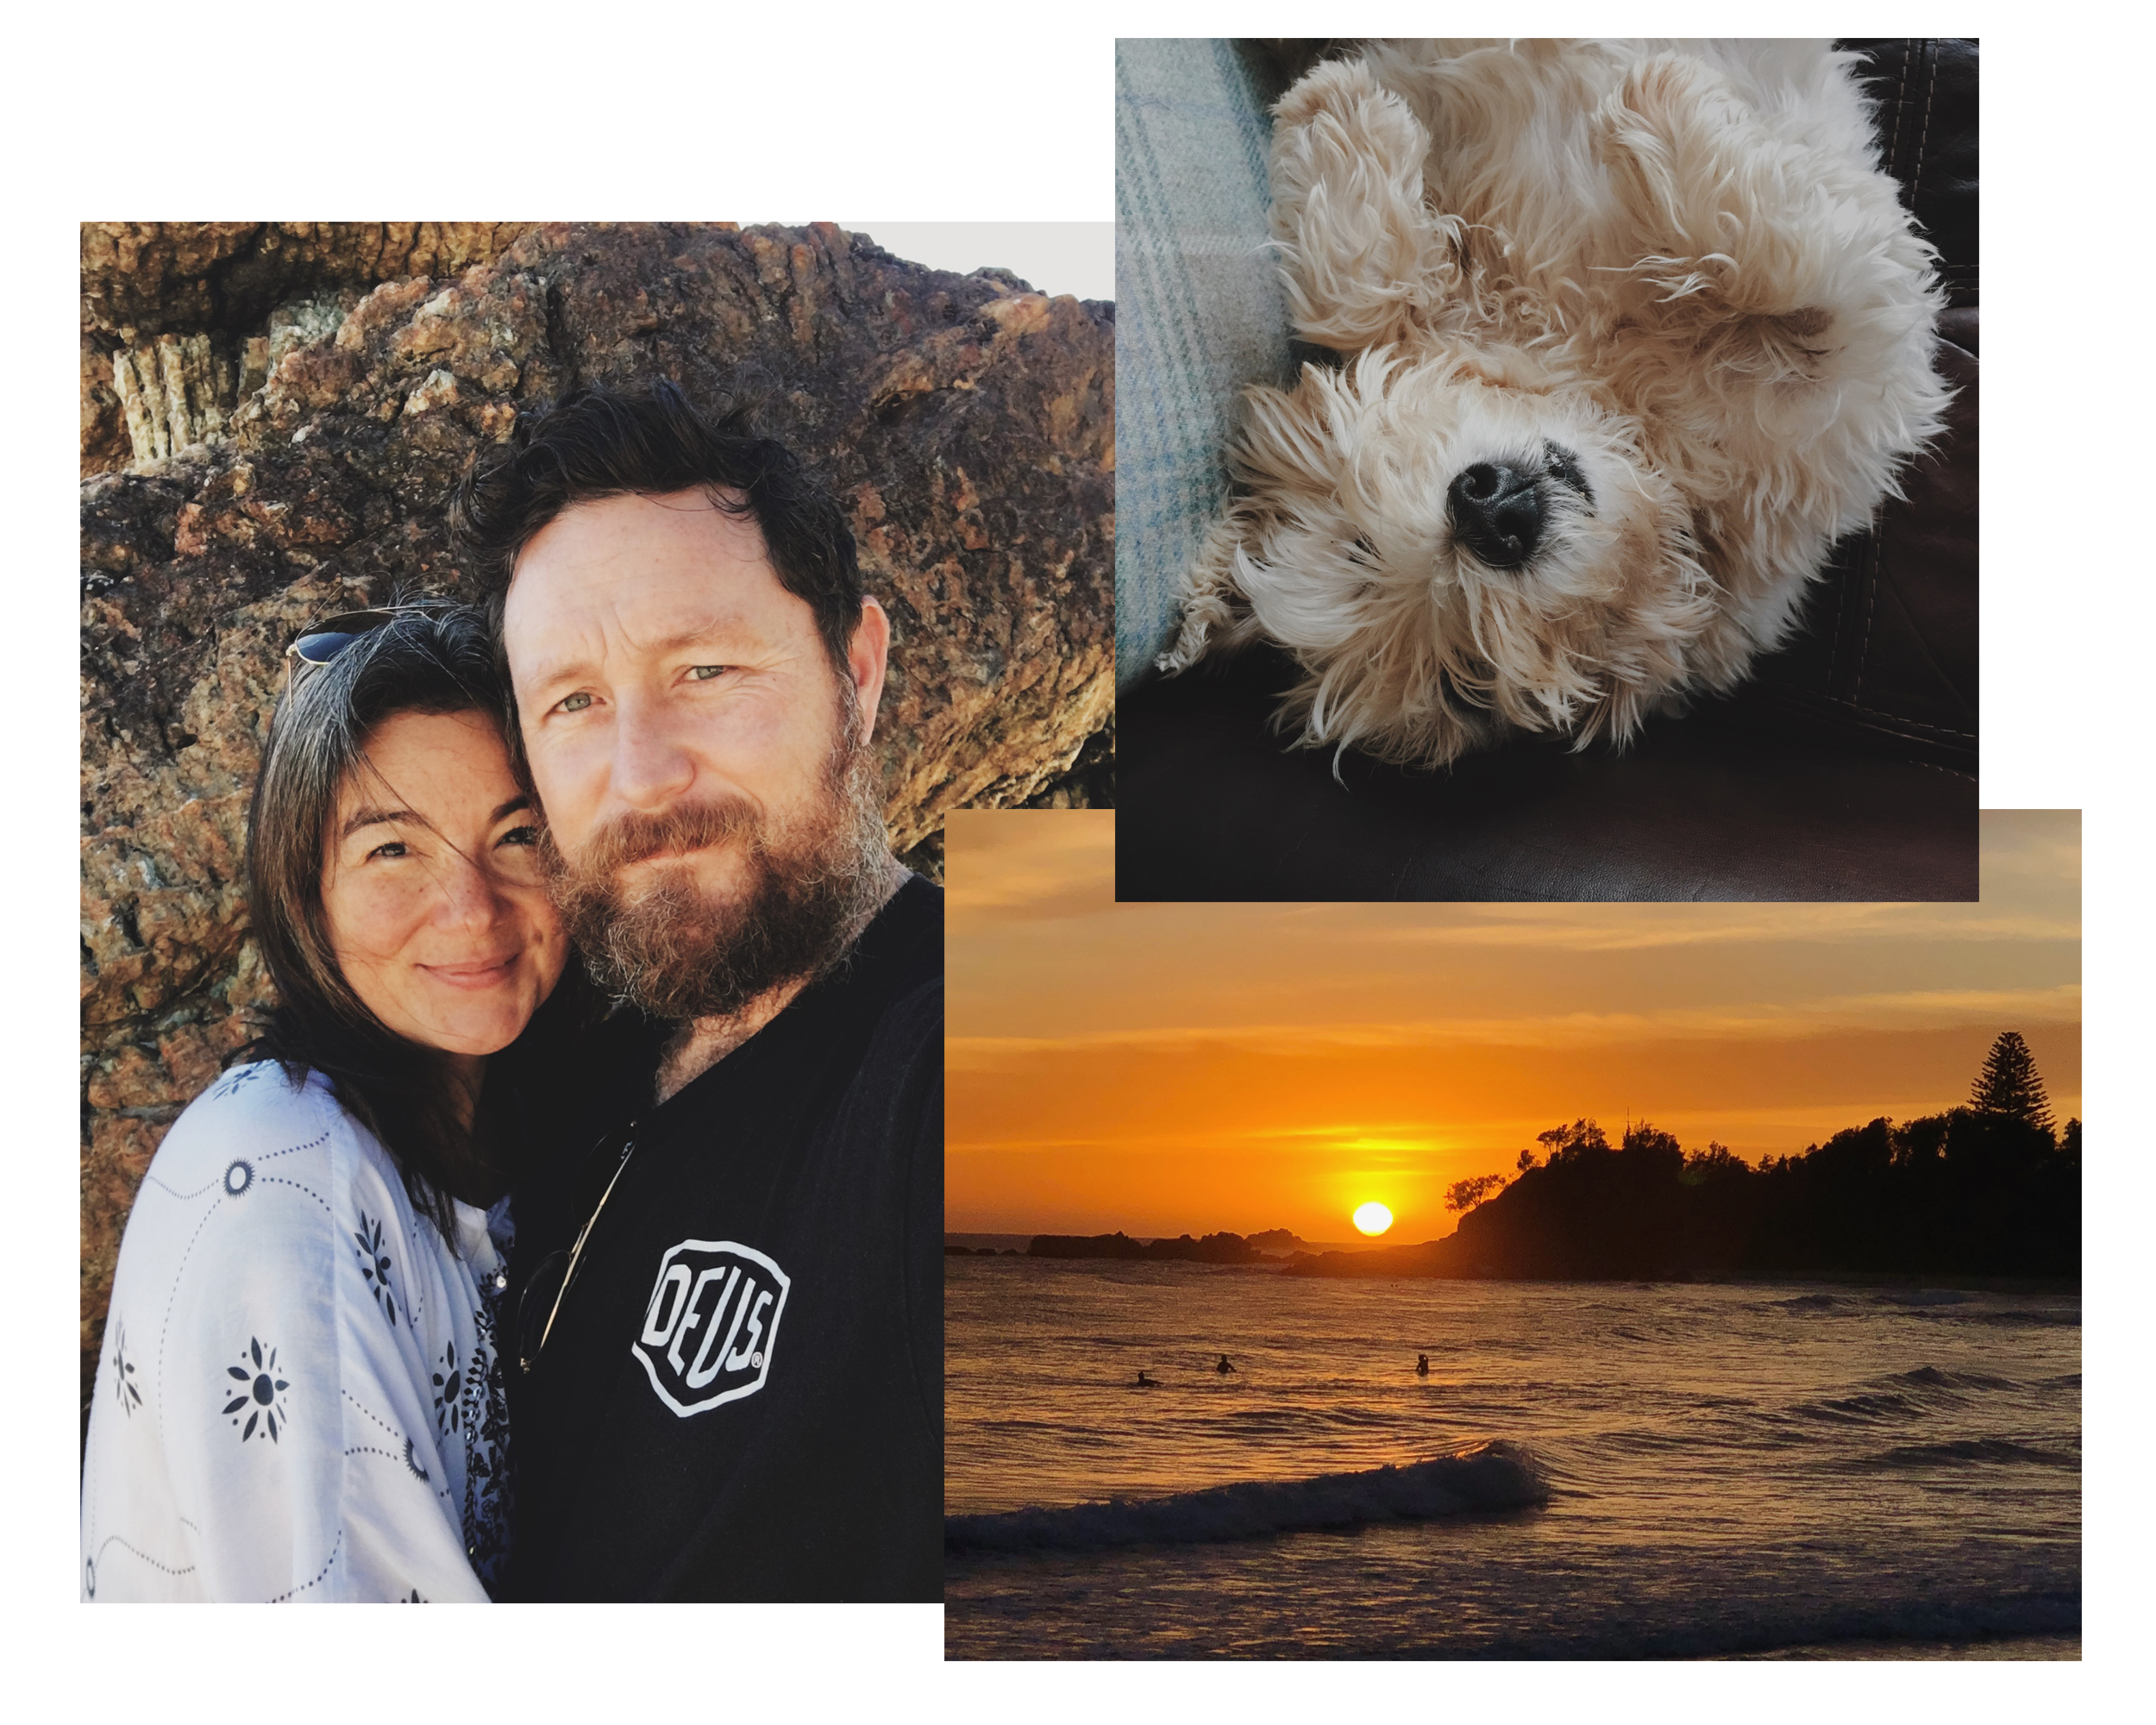 I live by the sea along the mid-North coast of New South Wales in Australia, with my ineffable husband and very demanding geriatric West Highland terrier where I'm lucky enough to watch the sun rise above the ocean most mornings.